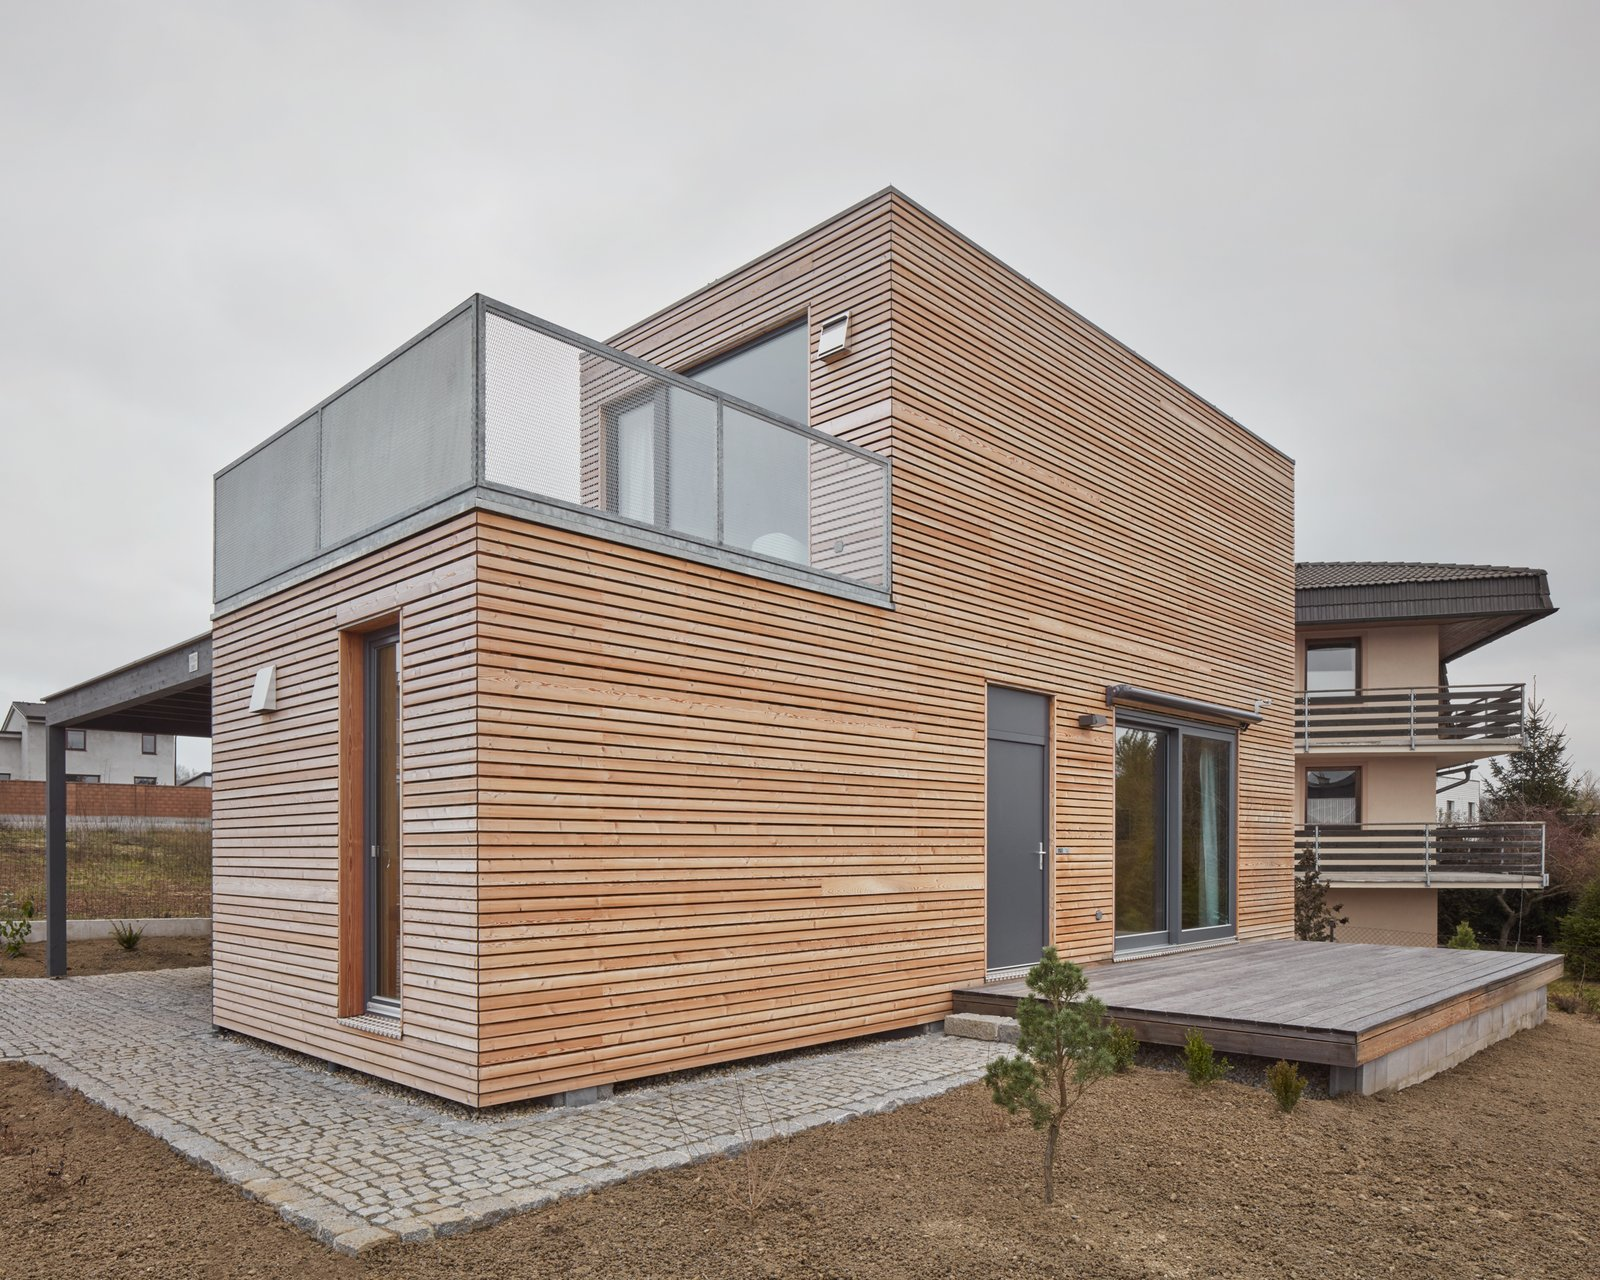 Exterior, Metal Siding Material, Wood Siding Material, House Building Type, Flat RoofLine, and Glass Siding Material  Freedomek No.061 by BoysPlayNice Photography & Concept